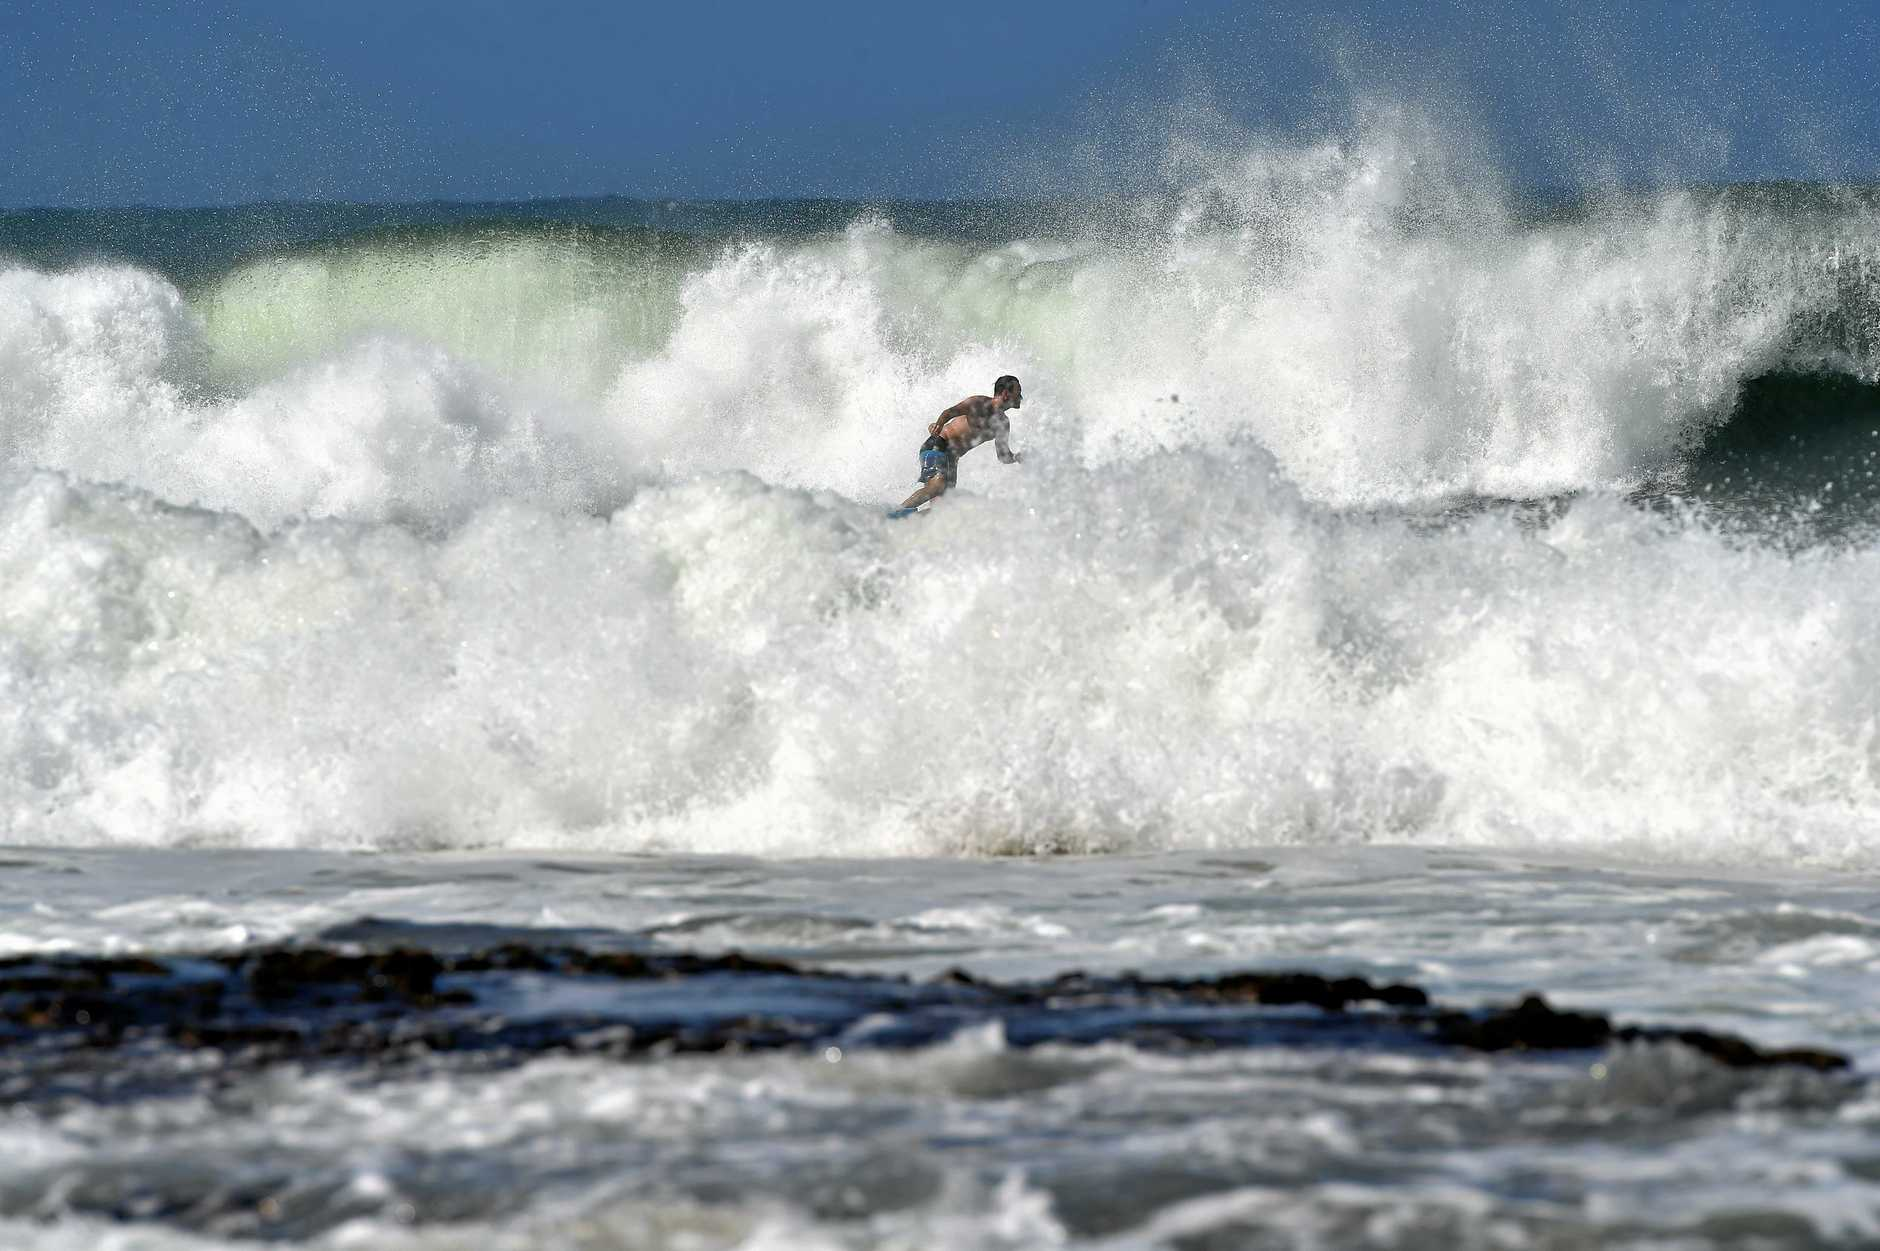 Surfers enjoy the large swell off Mooloolaba Beach from Cyclone Oma.